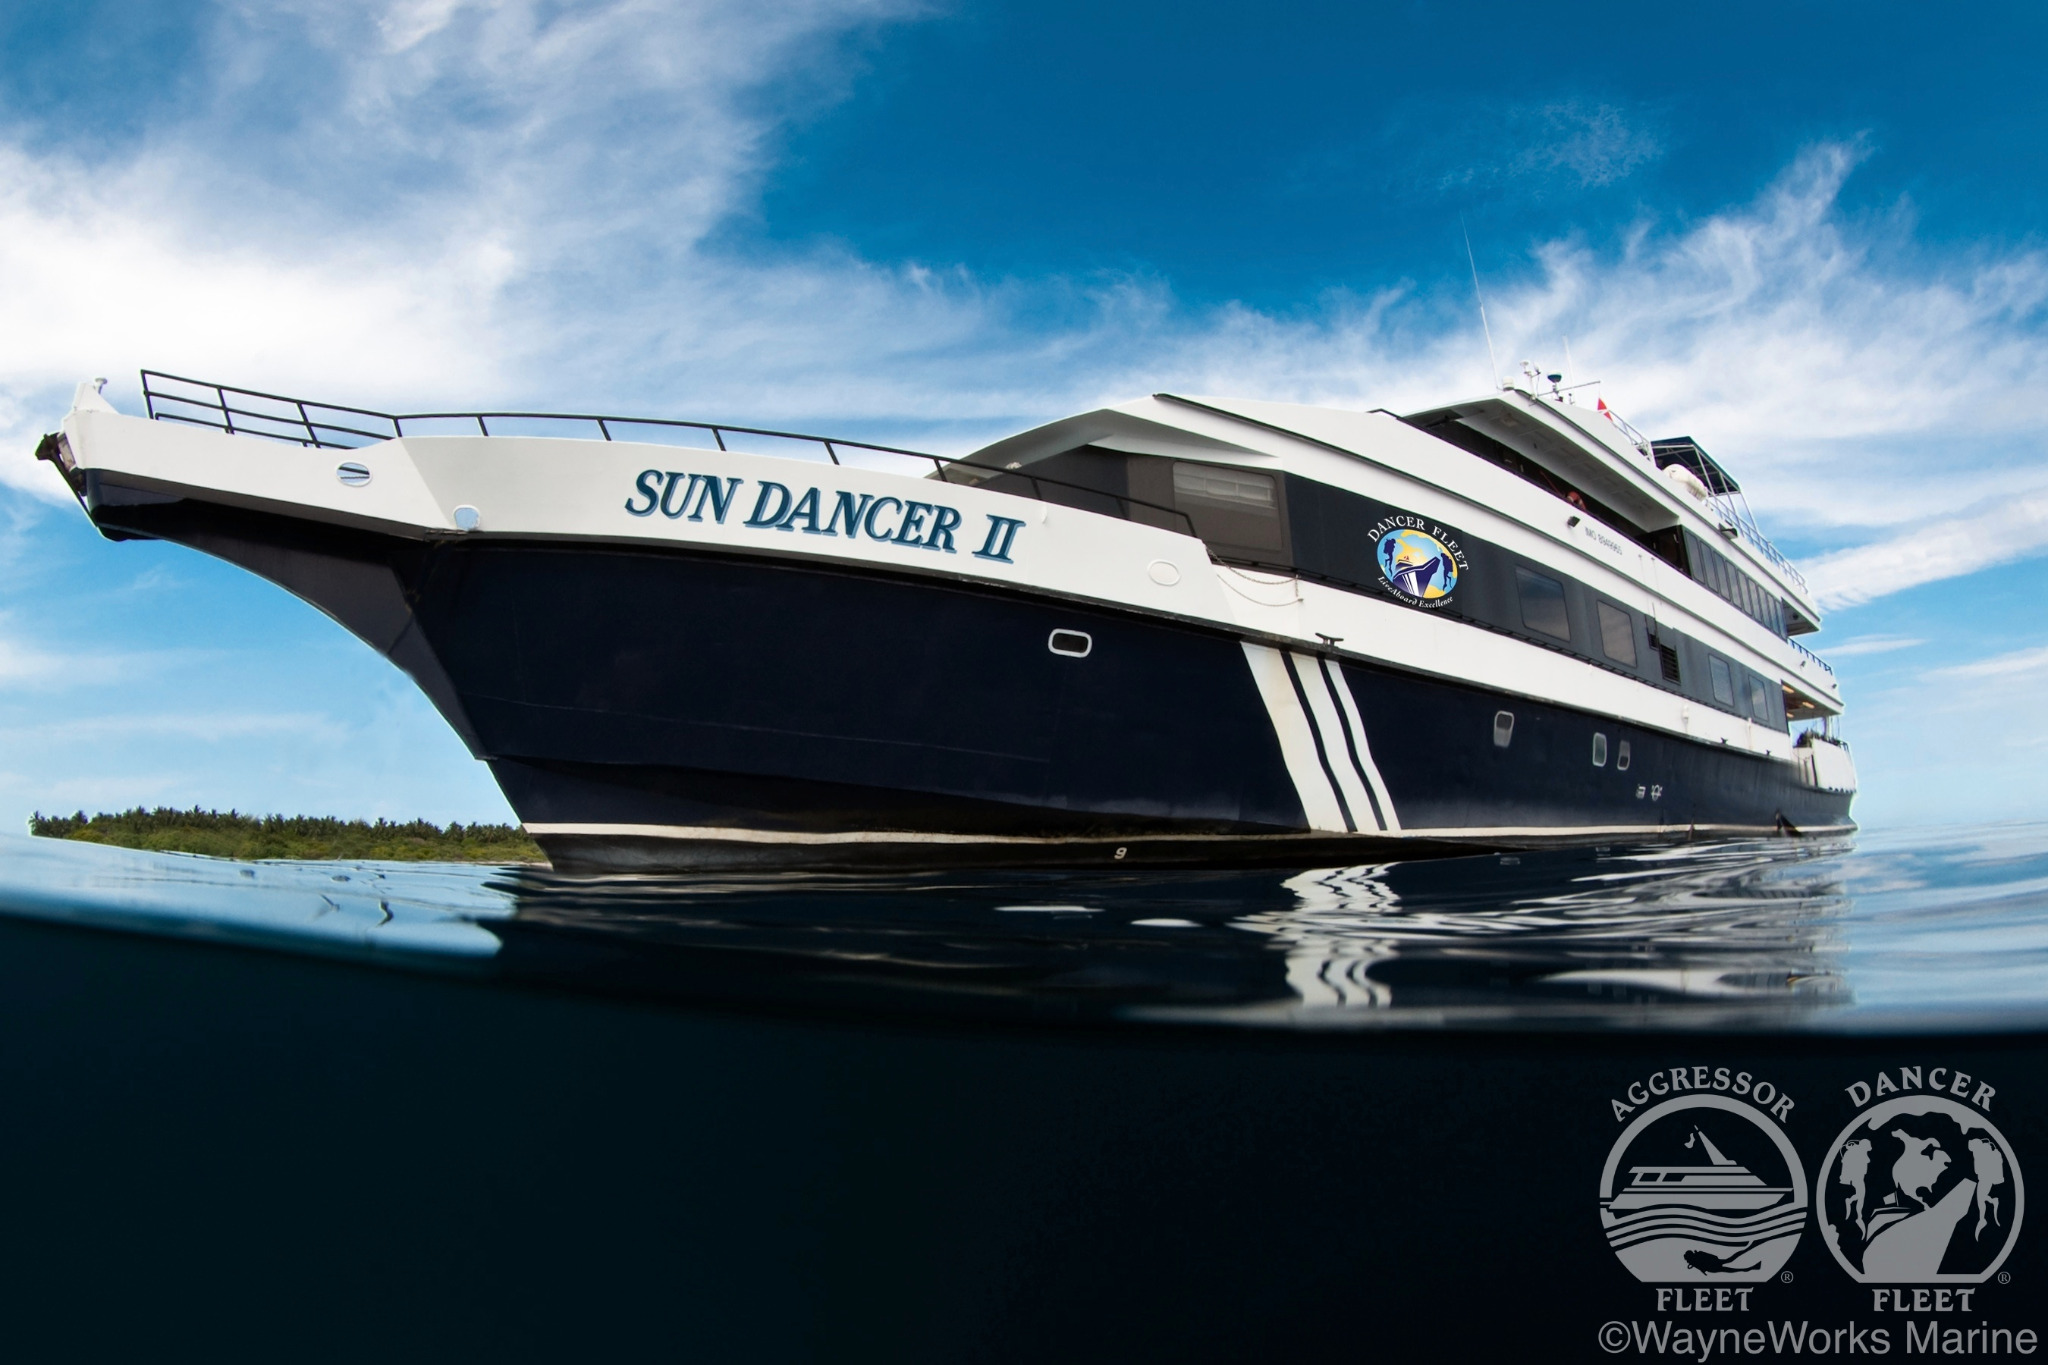 Belize Aggressor IV (Sun Dancer II)